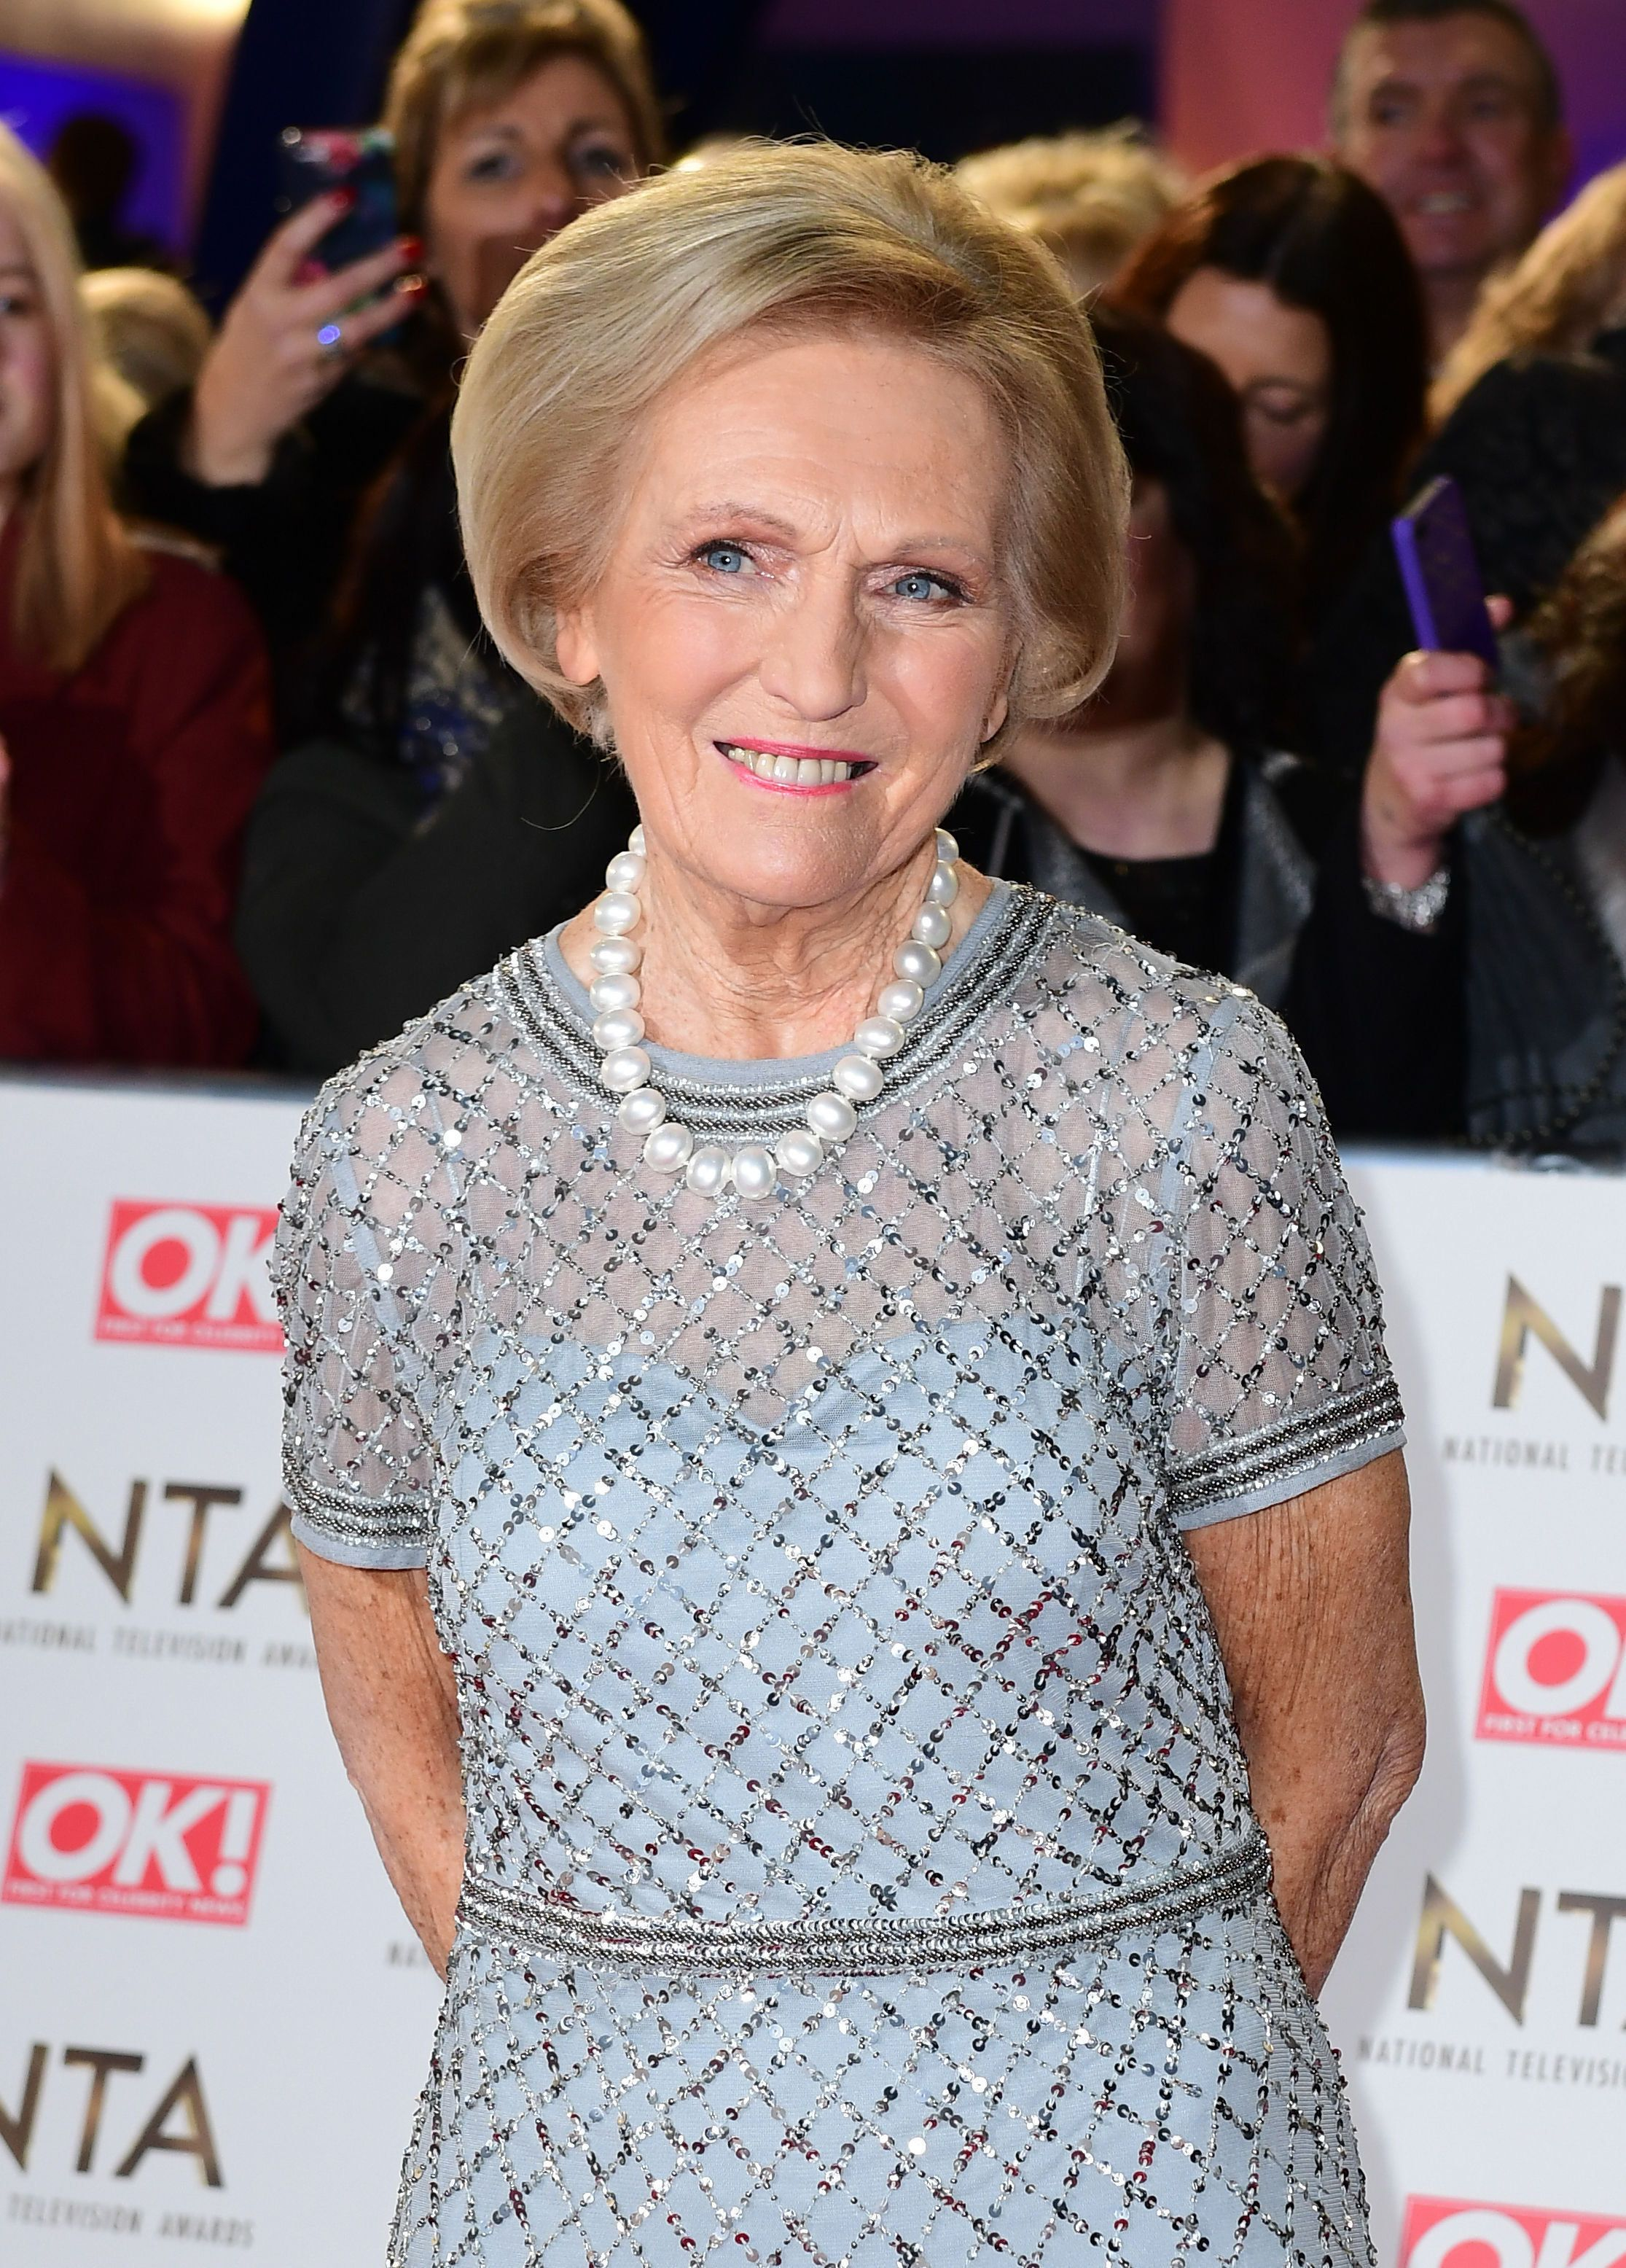 Mary Berry Divides Twitter With Controversial Opinion About Avocado On